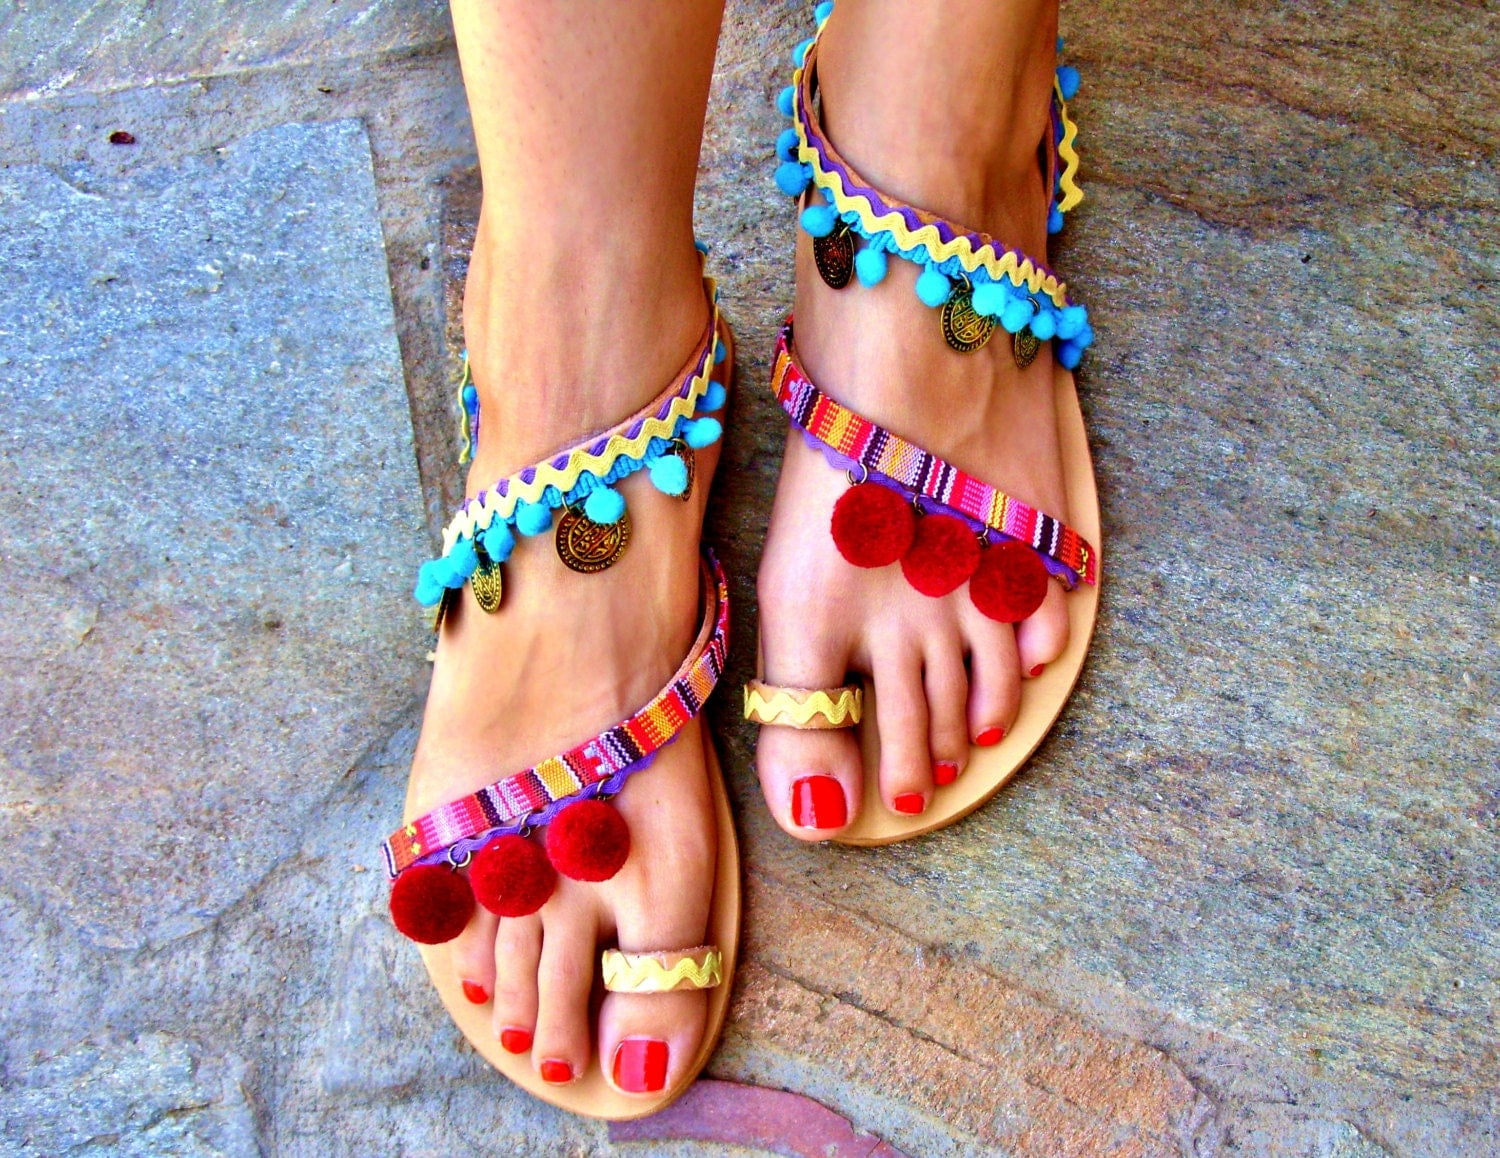 Womens sandals etsy - 40 Off Colorful Sandals Pom Pom Sandals Bohemian Strappy Sandals Greek Leather